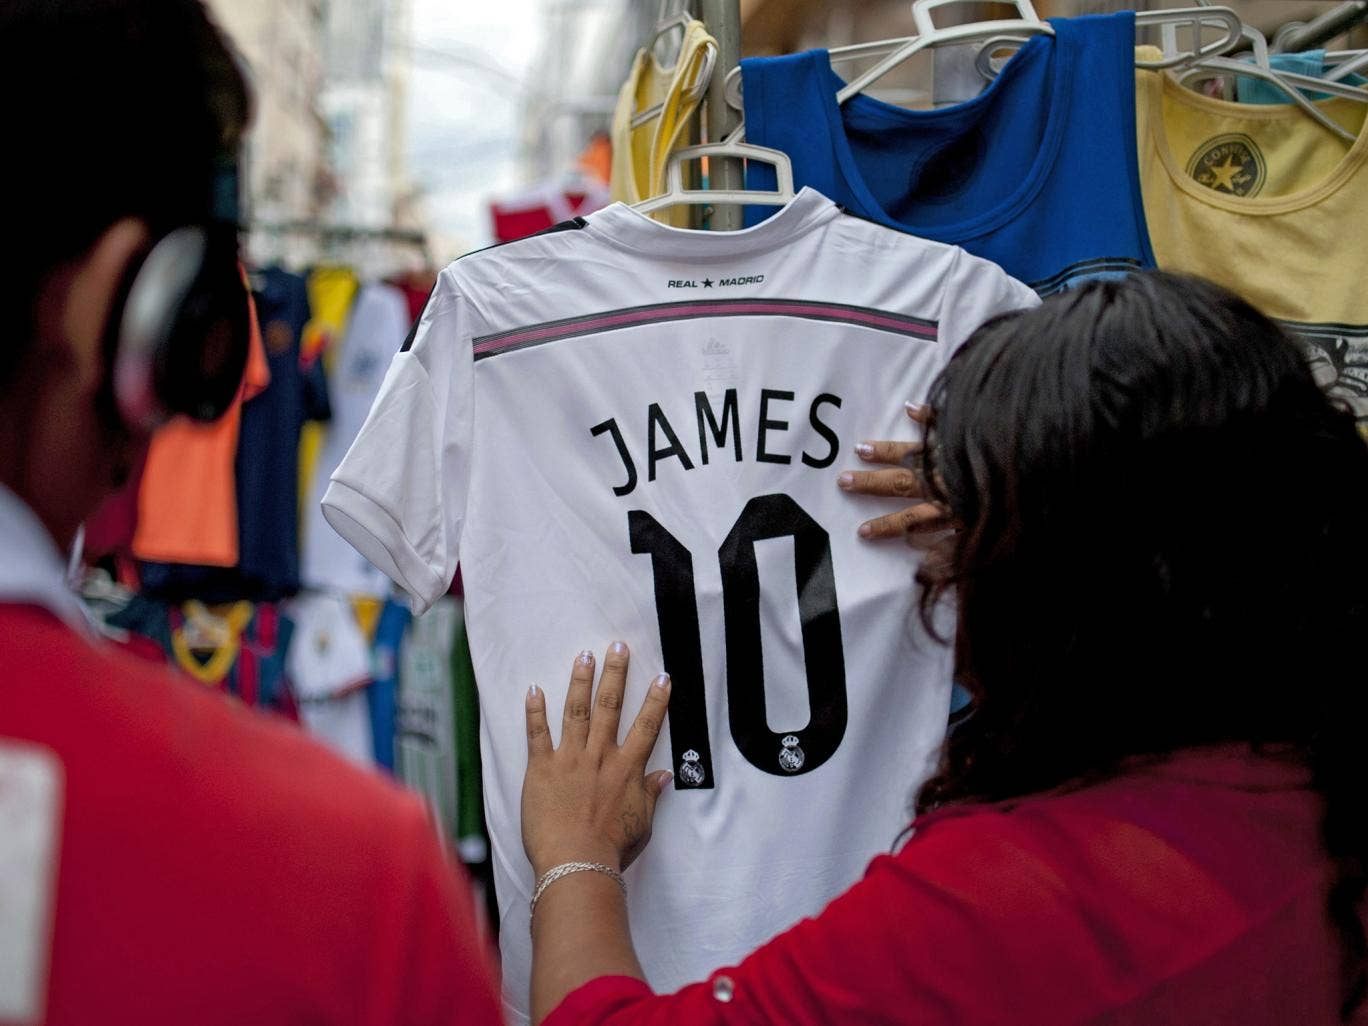 A James Rodriguez shirt on sale